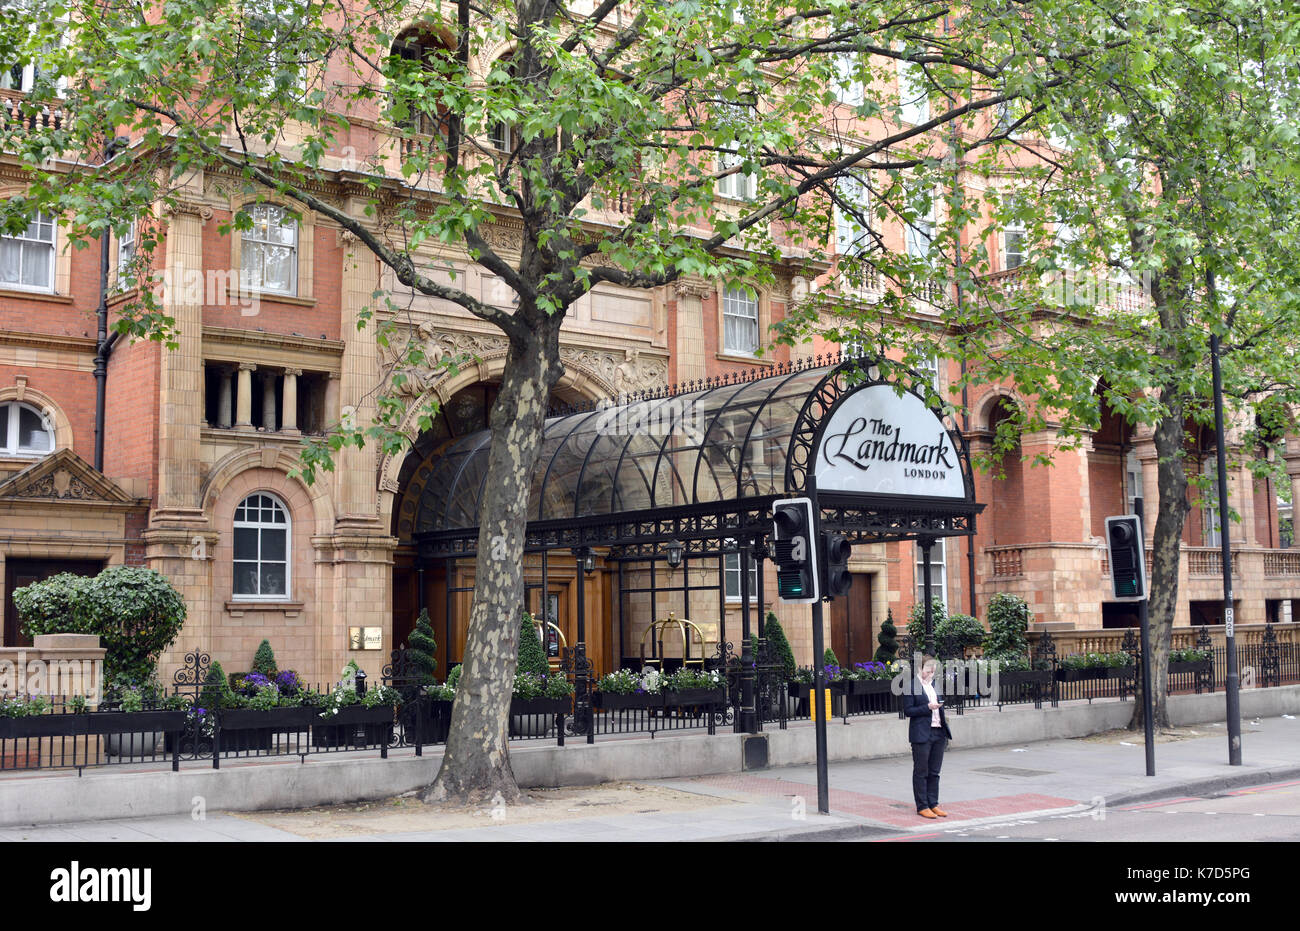 Photo Must Be Credited ©Alpha Press 066465 25/05/2016 The Landmark Hotel on Marylebone Road in London. - Stock Image